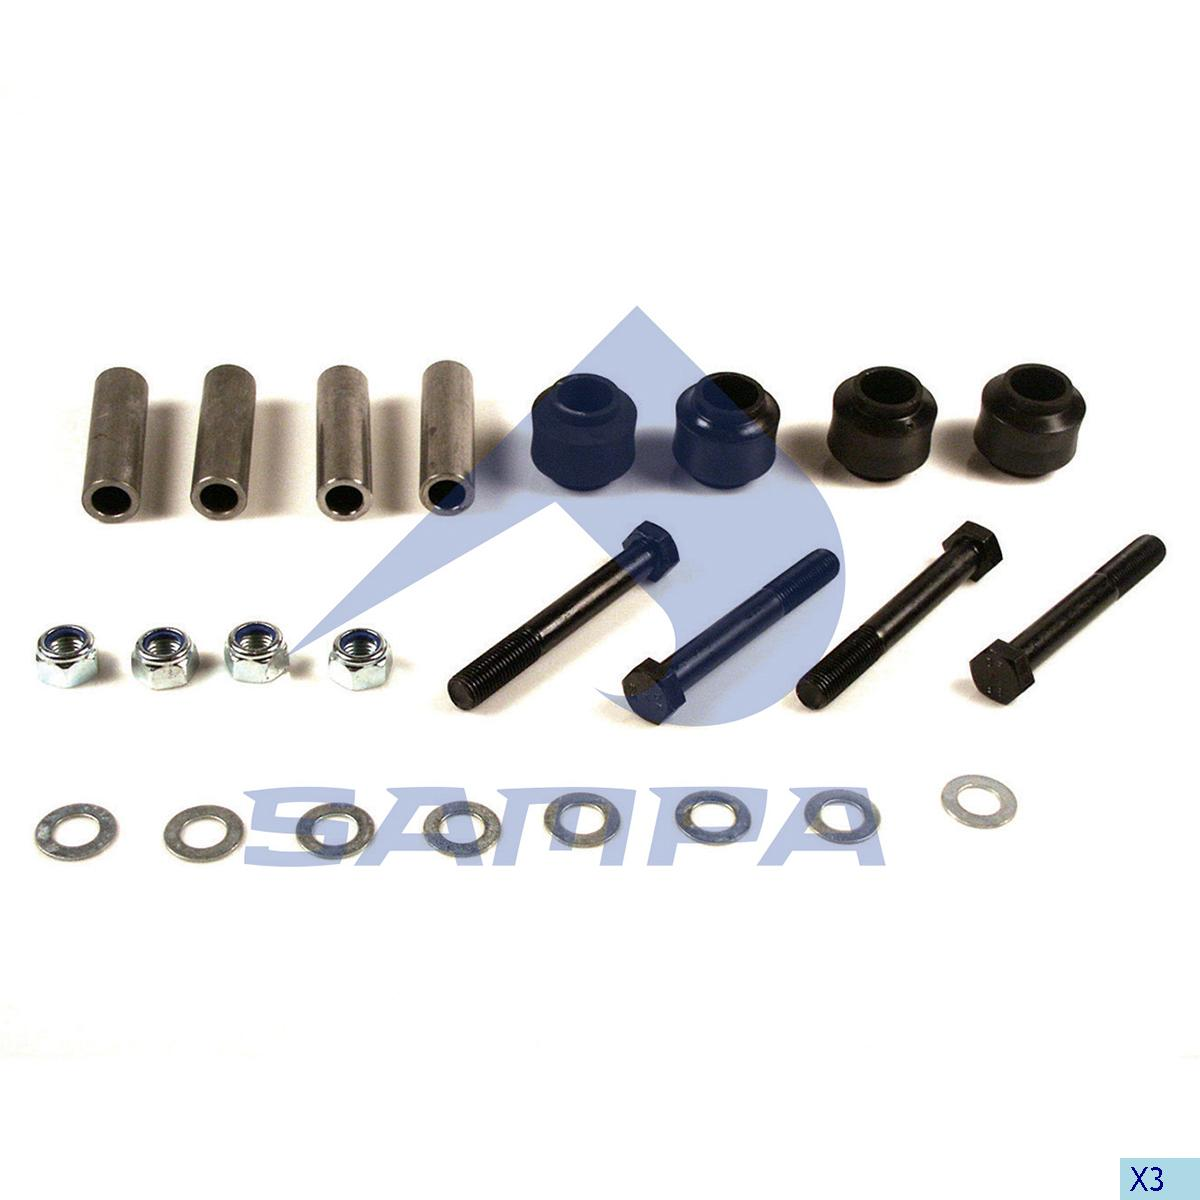 Repair Kit, Spring, Trailor, Suspension